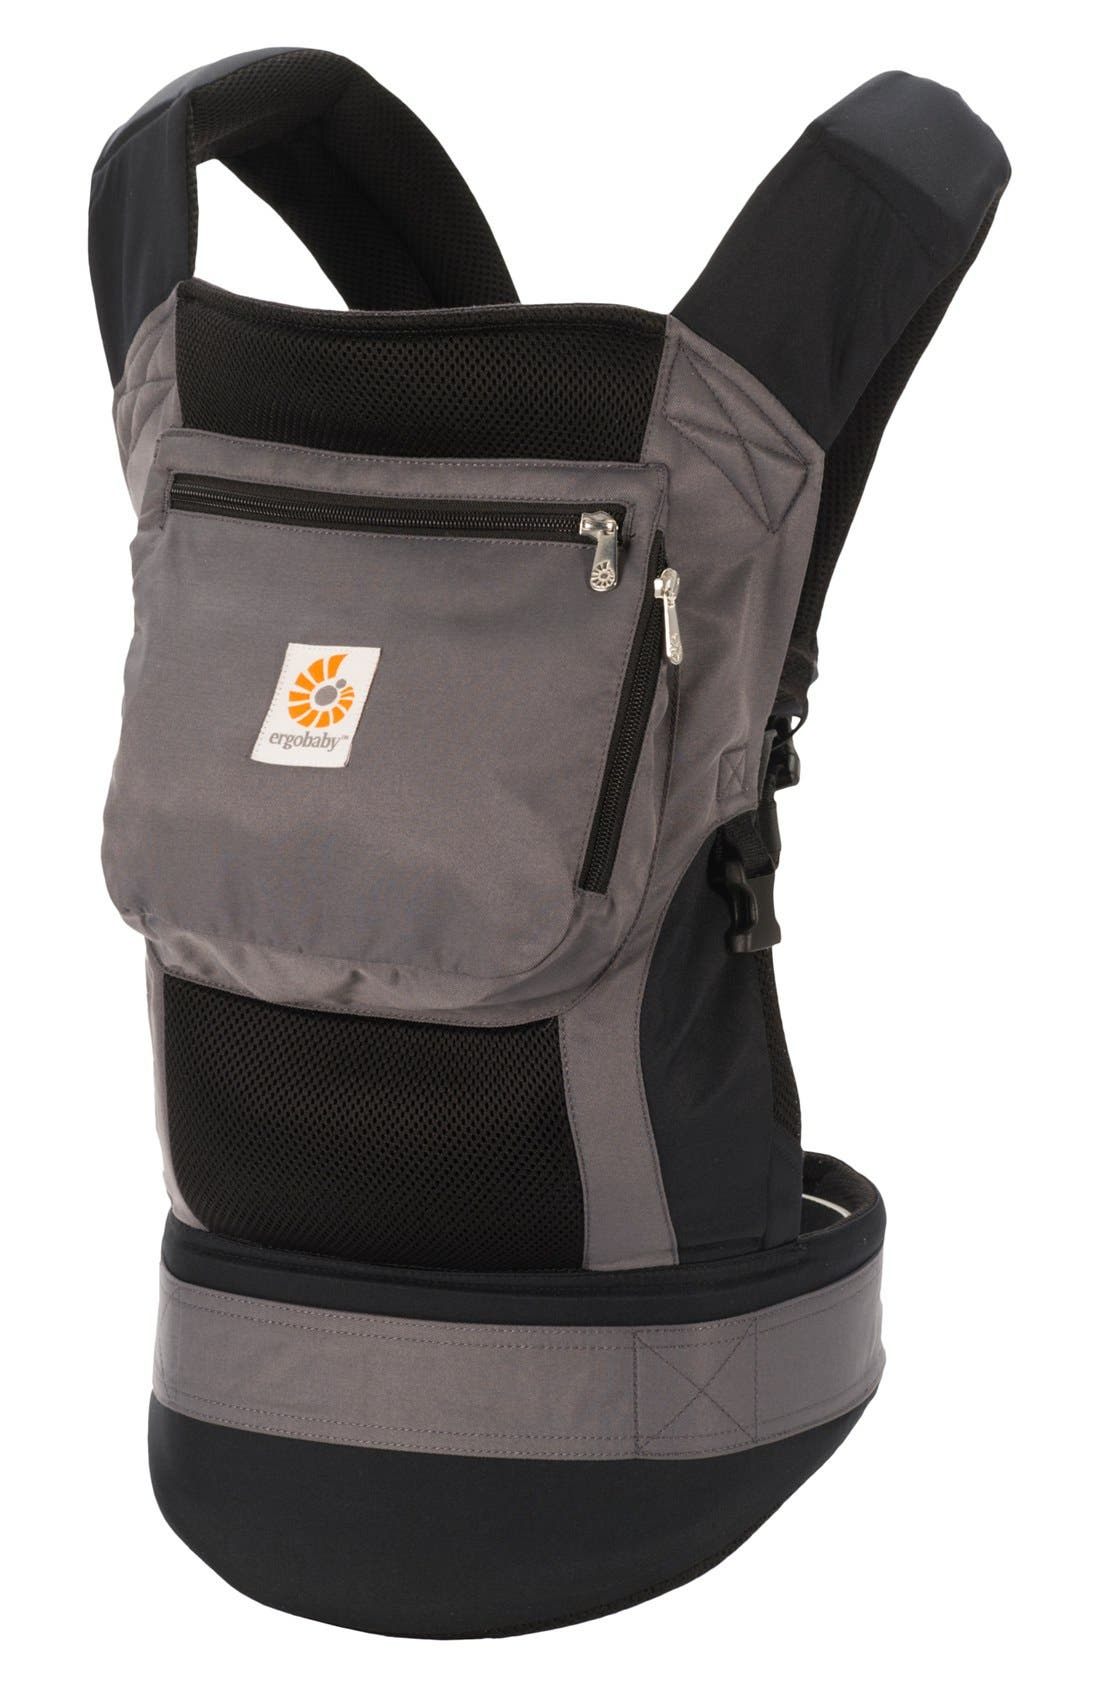 ERGOBABY 'Performance' Baby Carrier